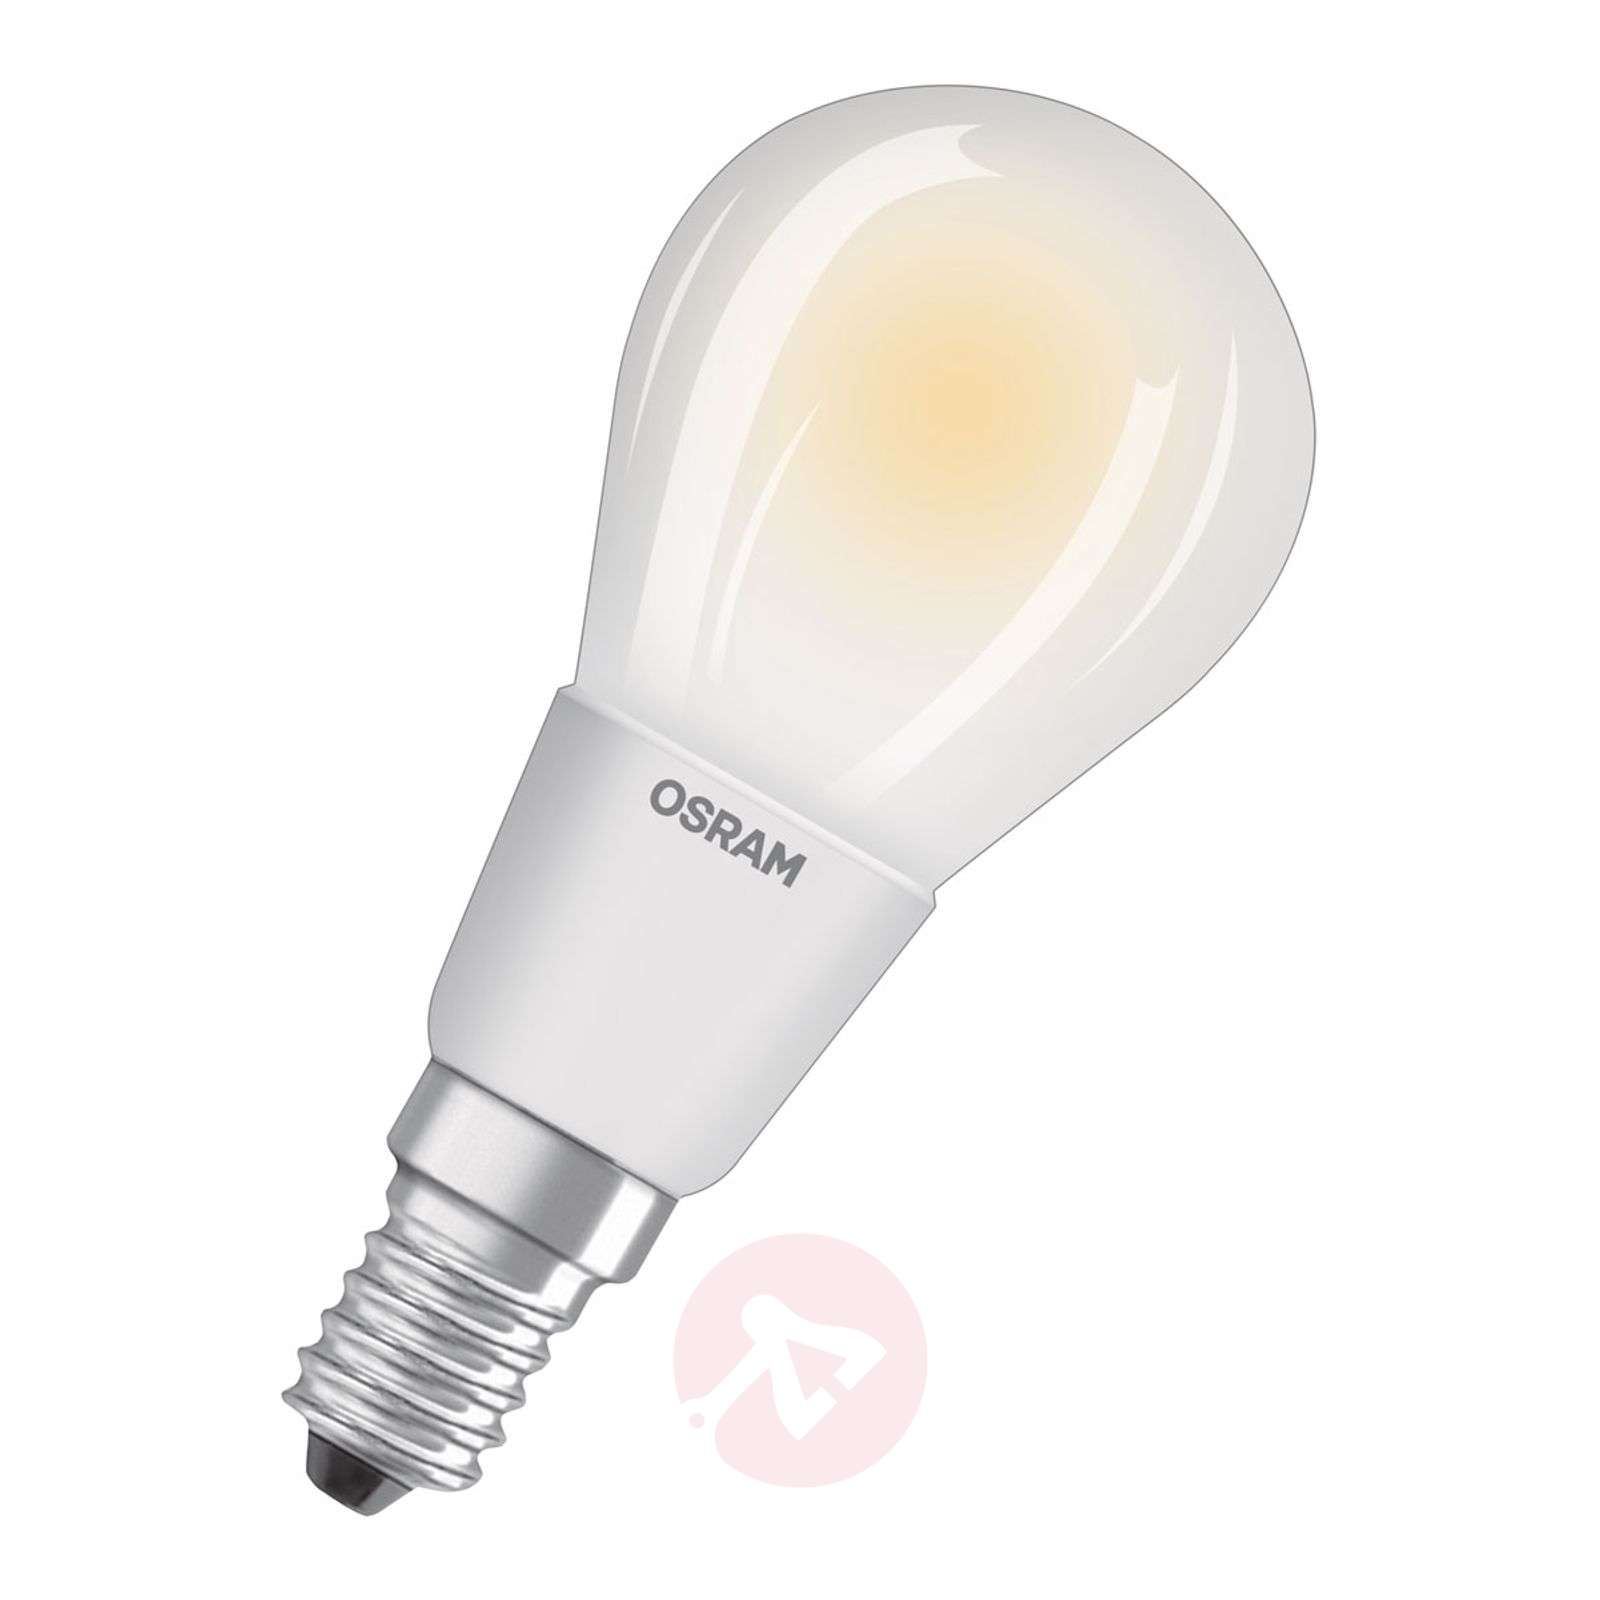 OSRAM goutte LED E14 6 W mat 4 000 K dimmable-7262225-01